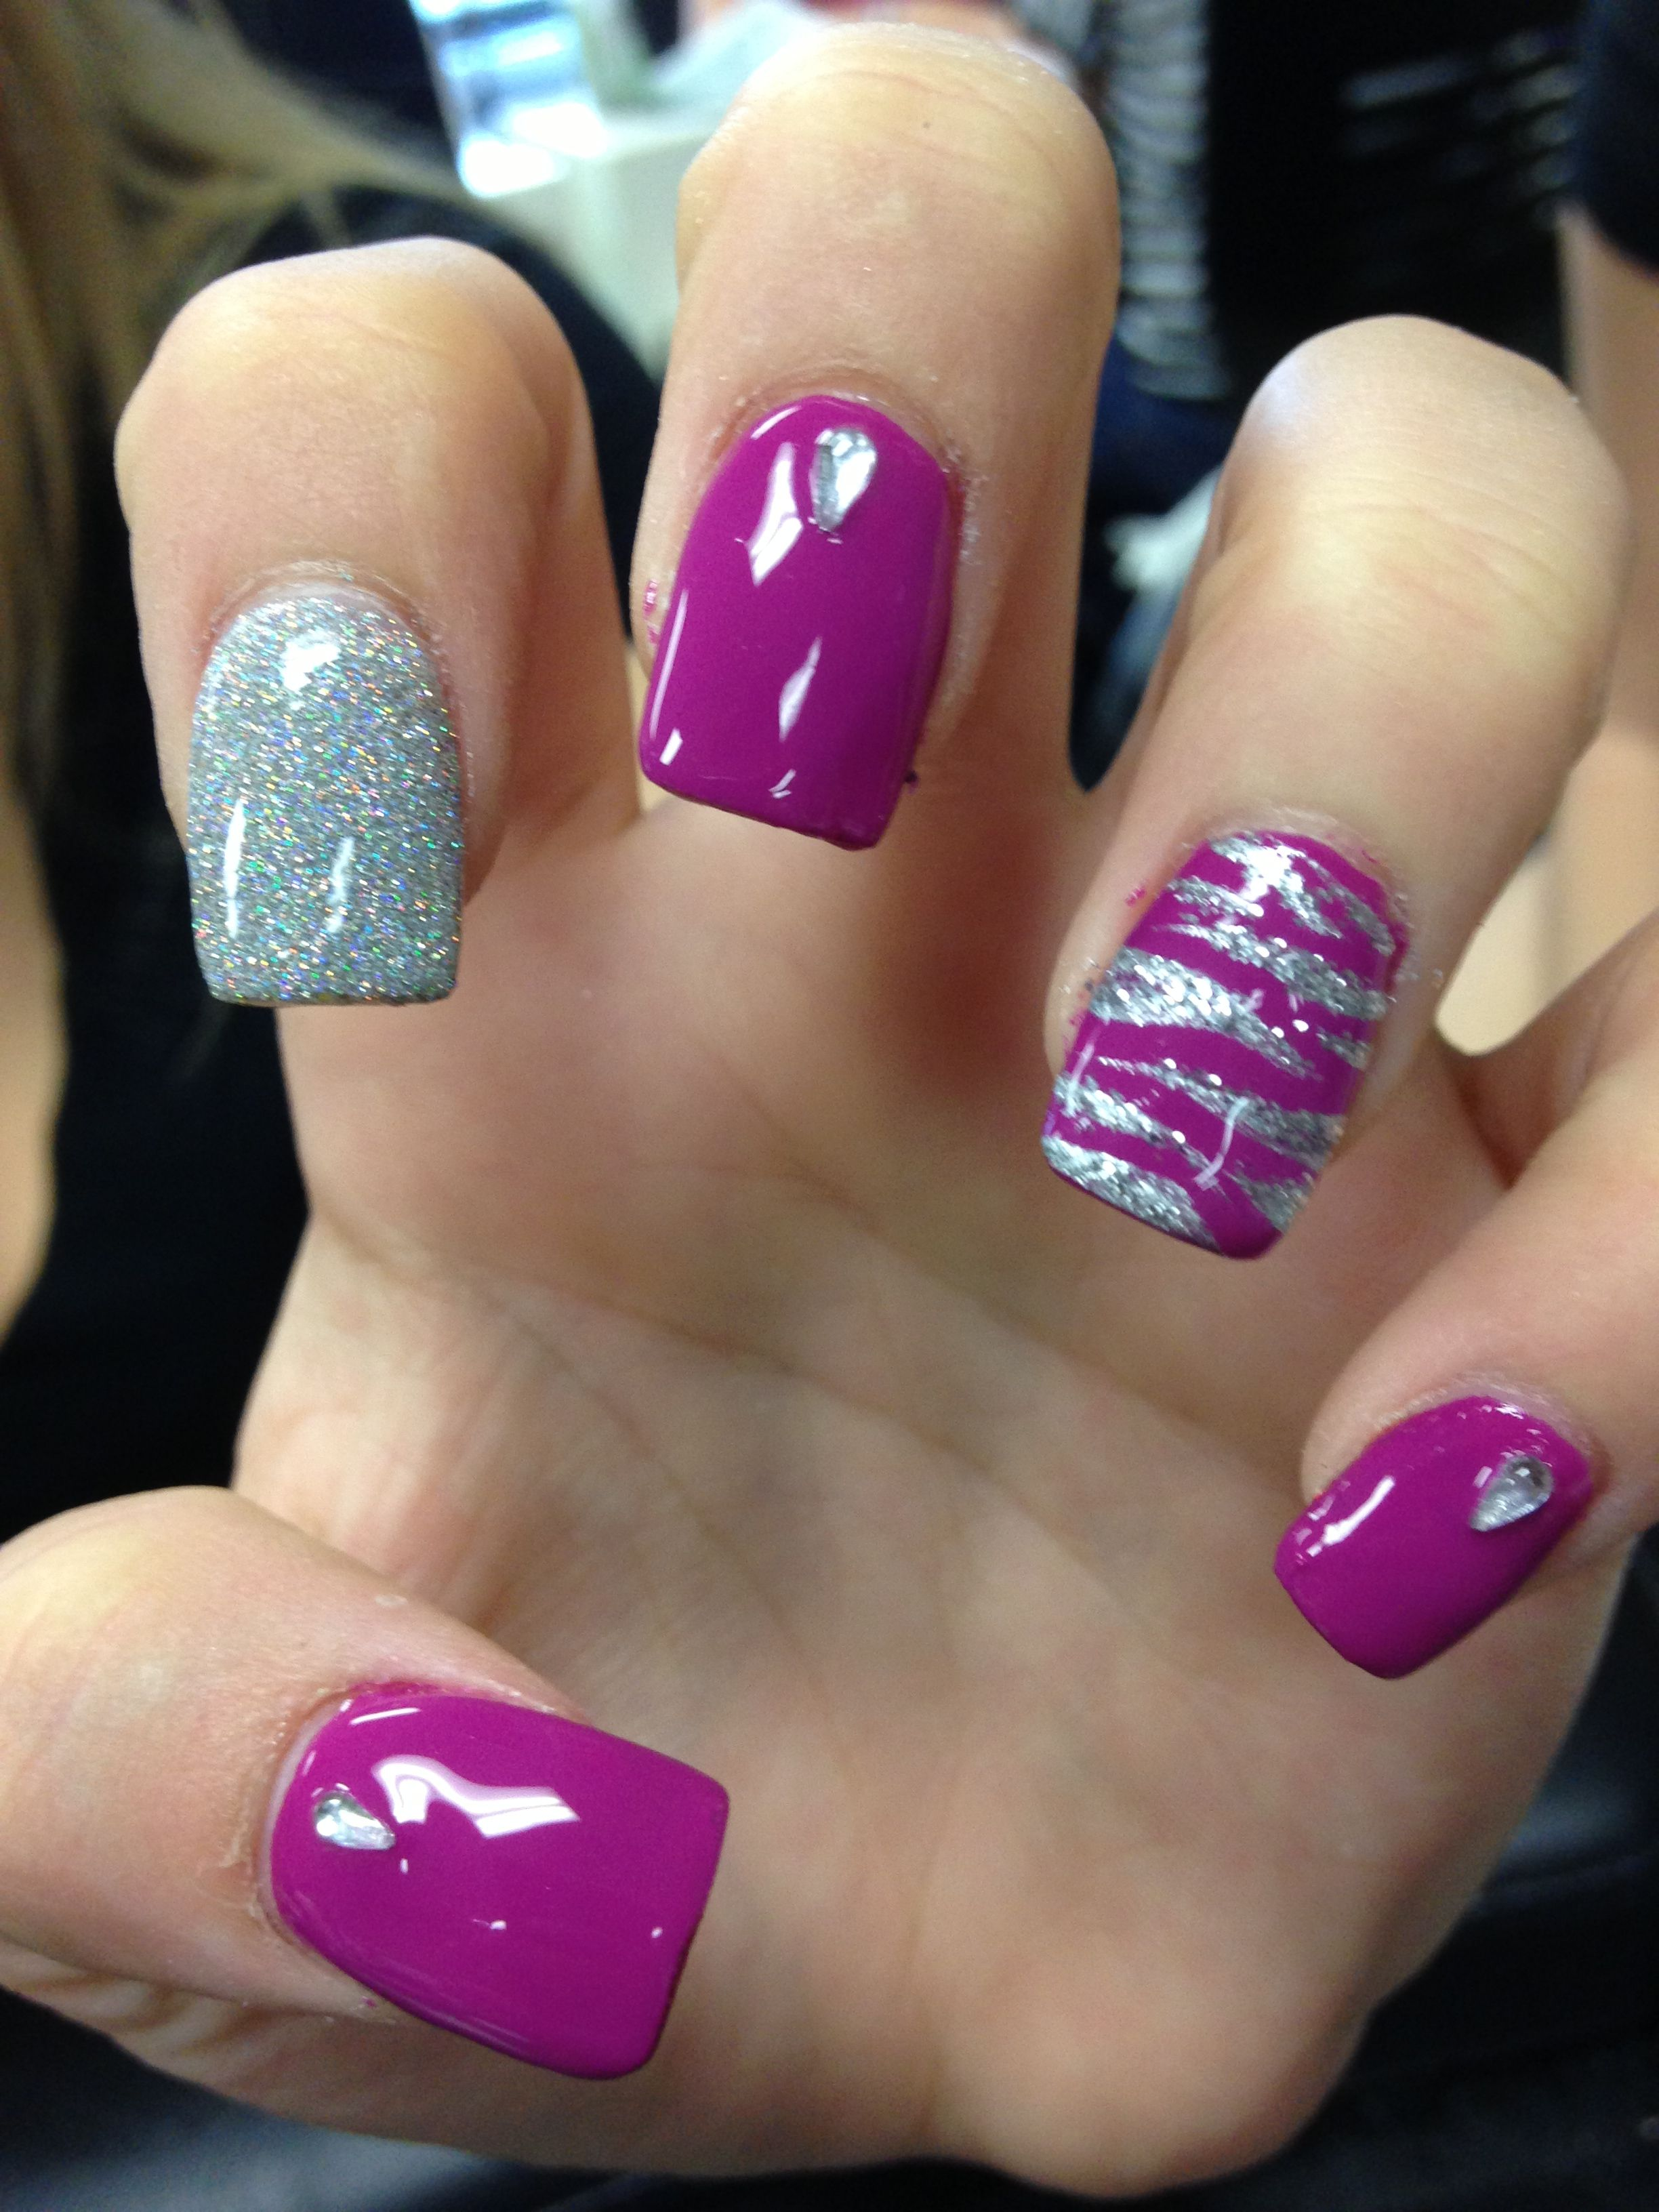 Make Your Own Nail Designs and Have Fun | Zebra nail designs, Zebra ...